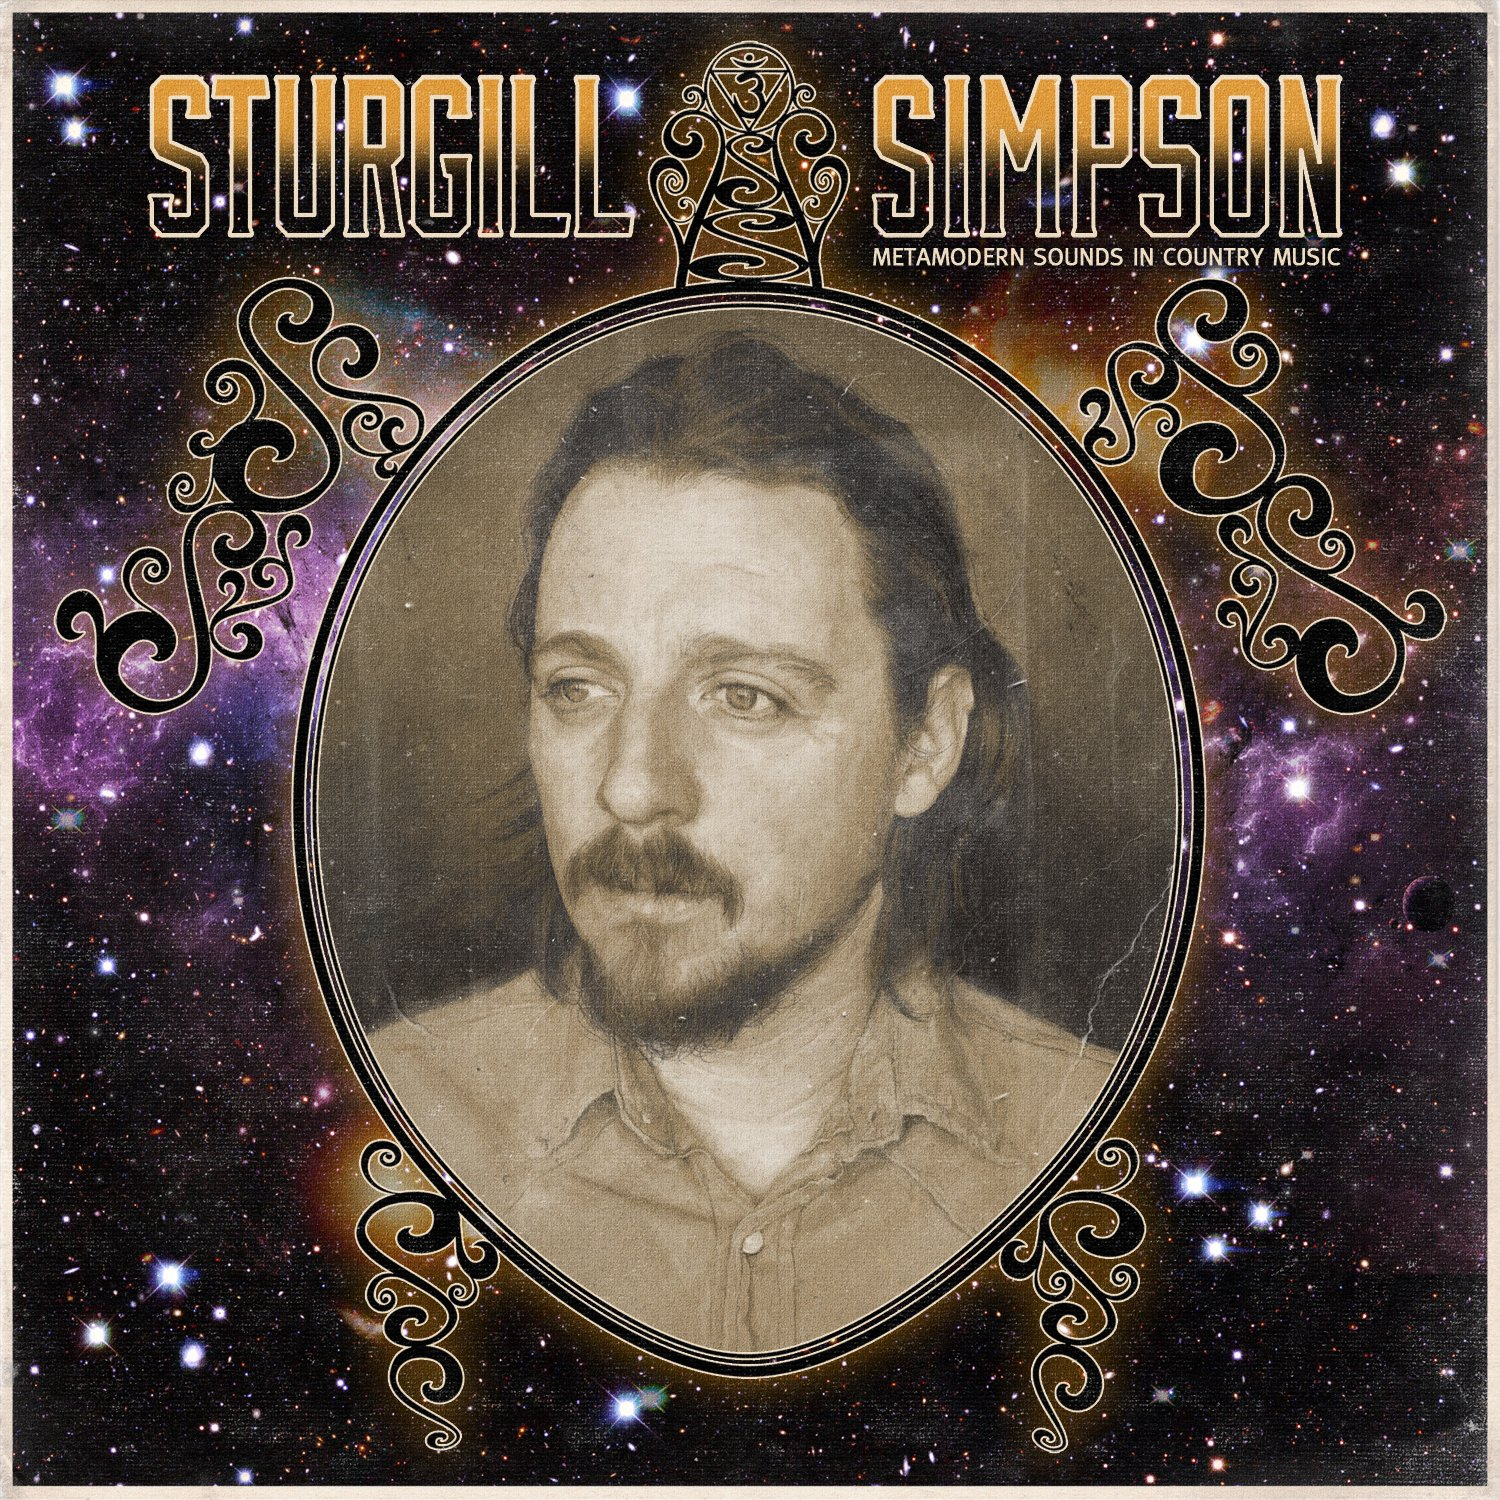 10.17 Sturgill Simpson - Metamodern Sounds in Country Music